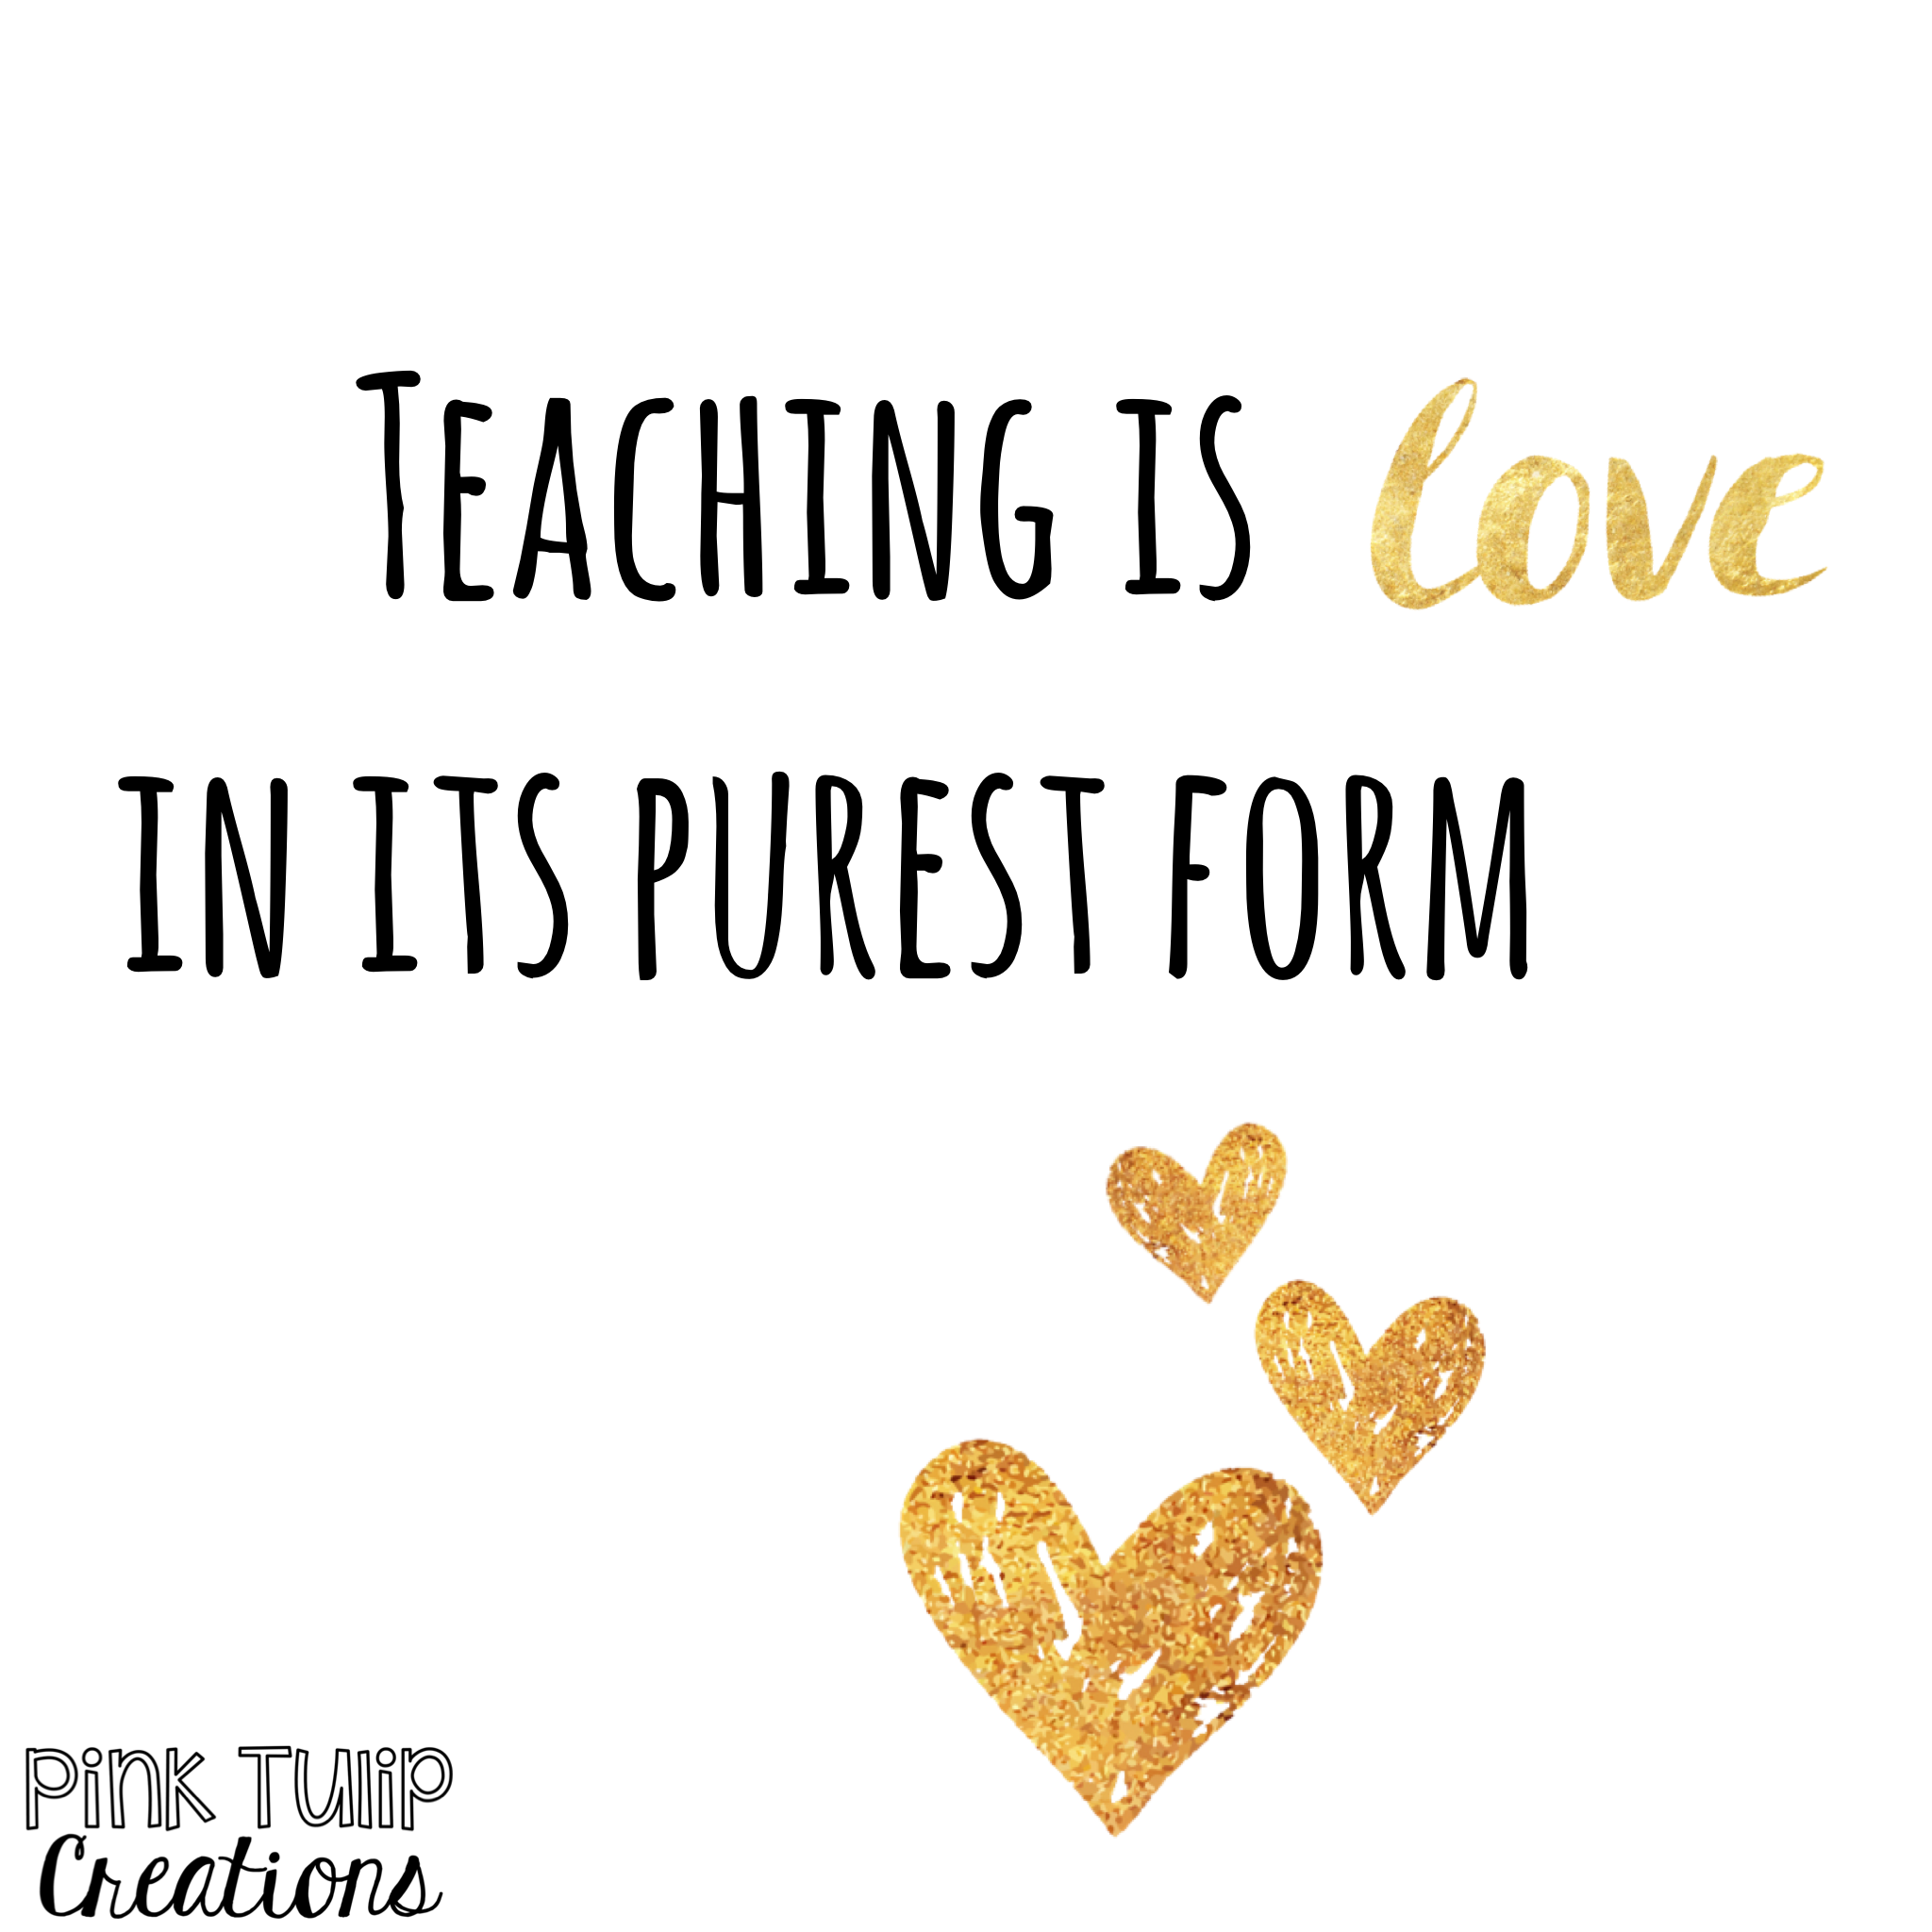 Download Teaching is love in its purest form... teaching quotes ...